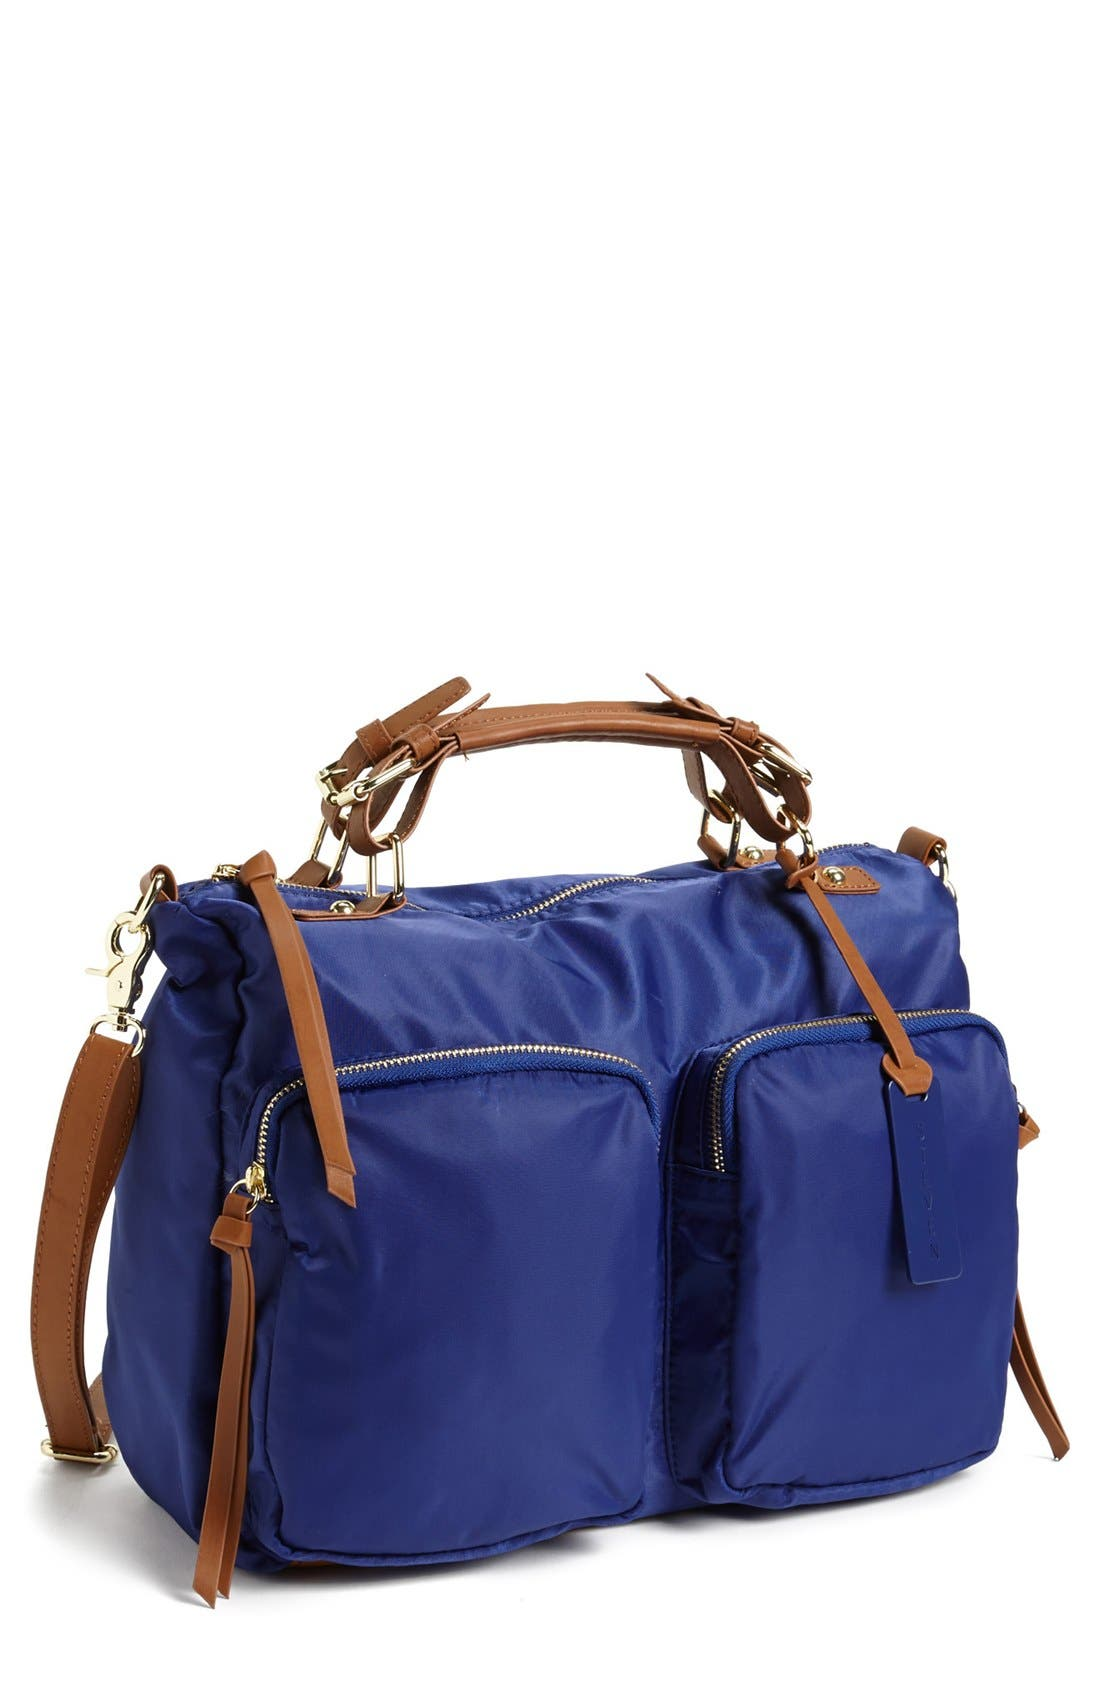 Alternate Image 1 Selected - Steven by Steve Madden 'Lighten Up' Satchel